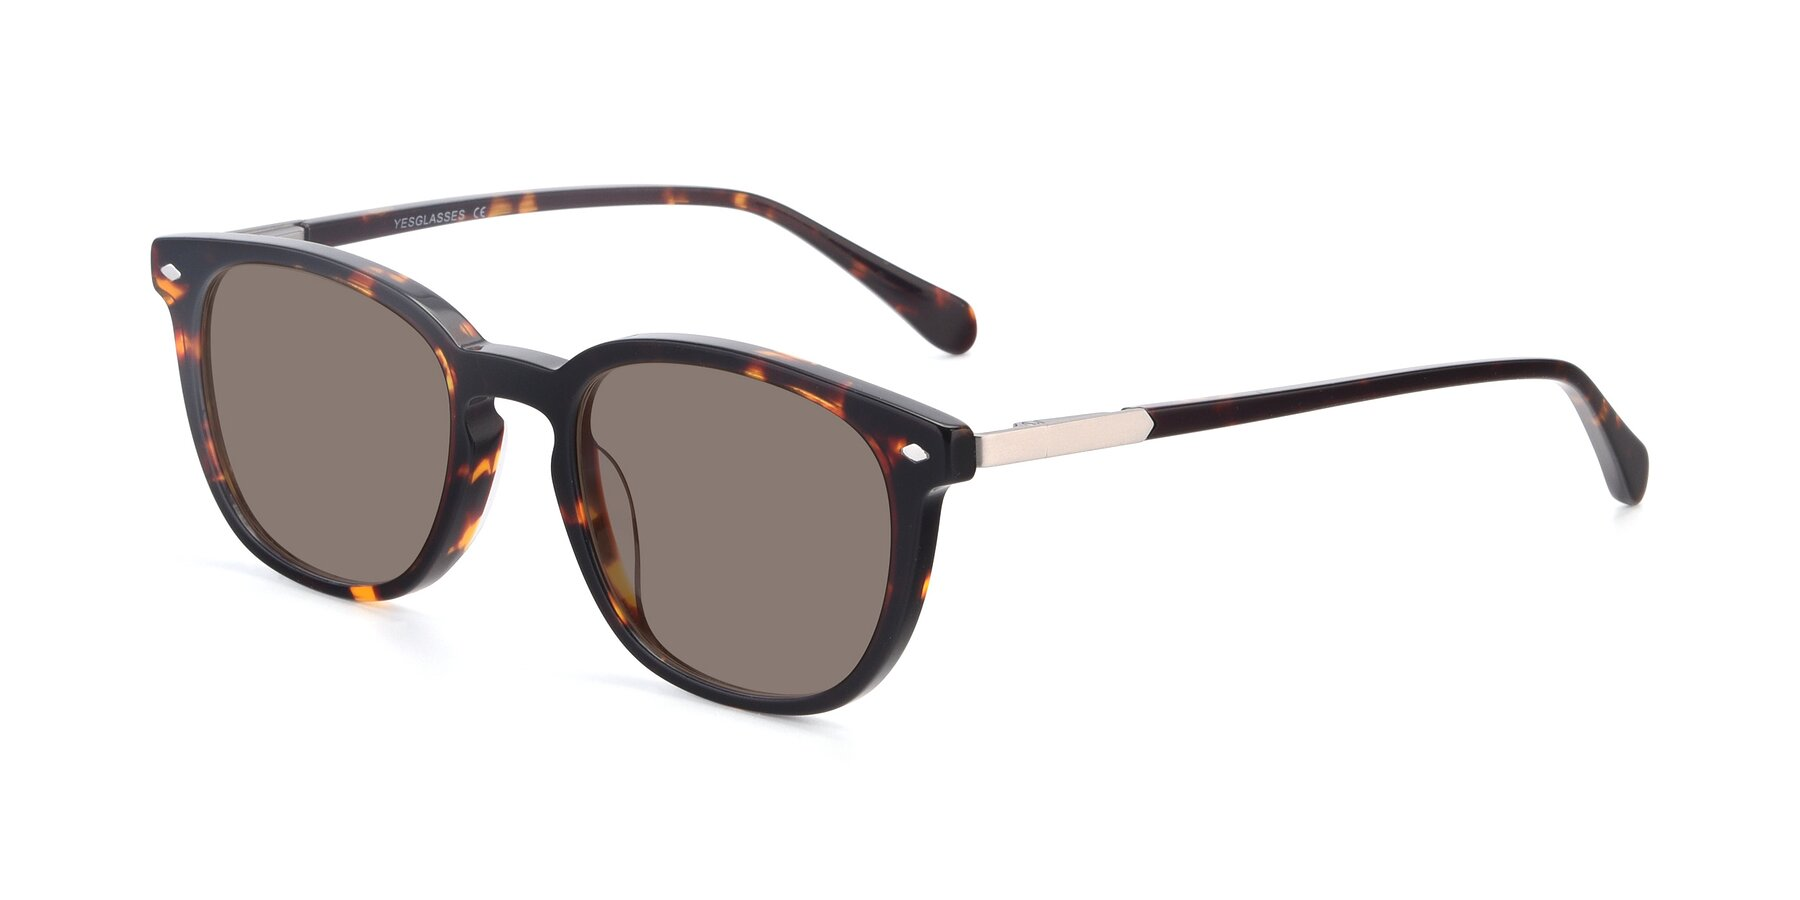 Angle of 17578 in Tortoise with Medium Brown Tinted Lenses